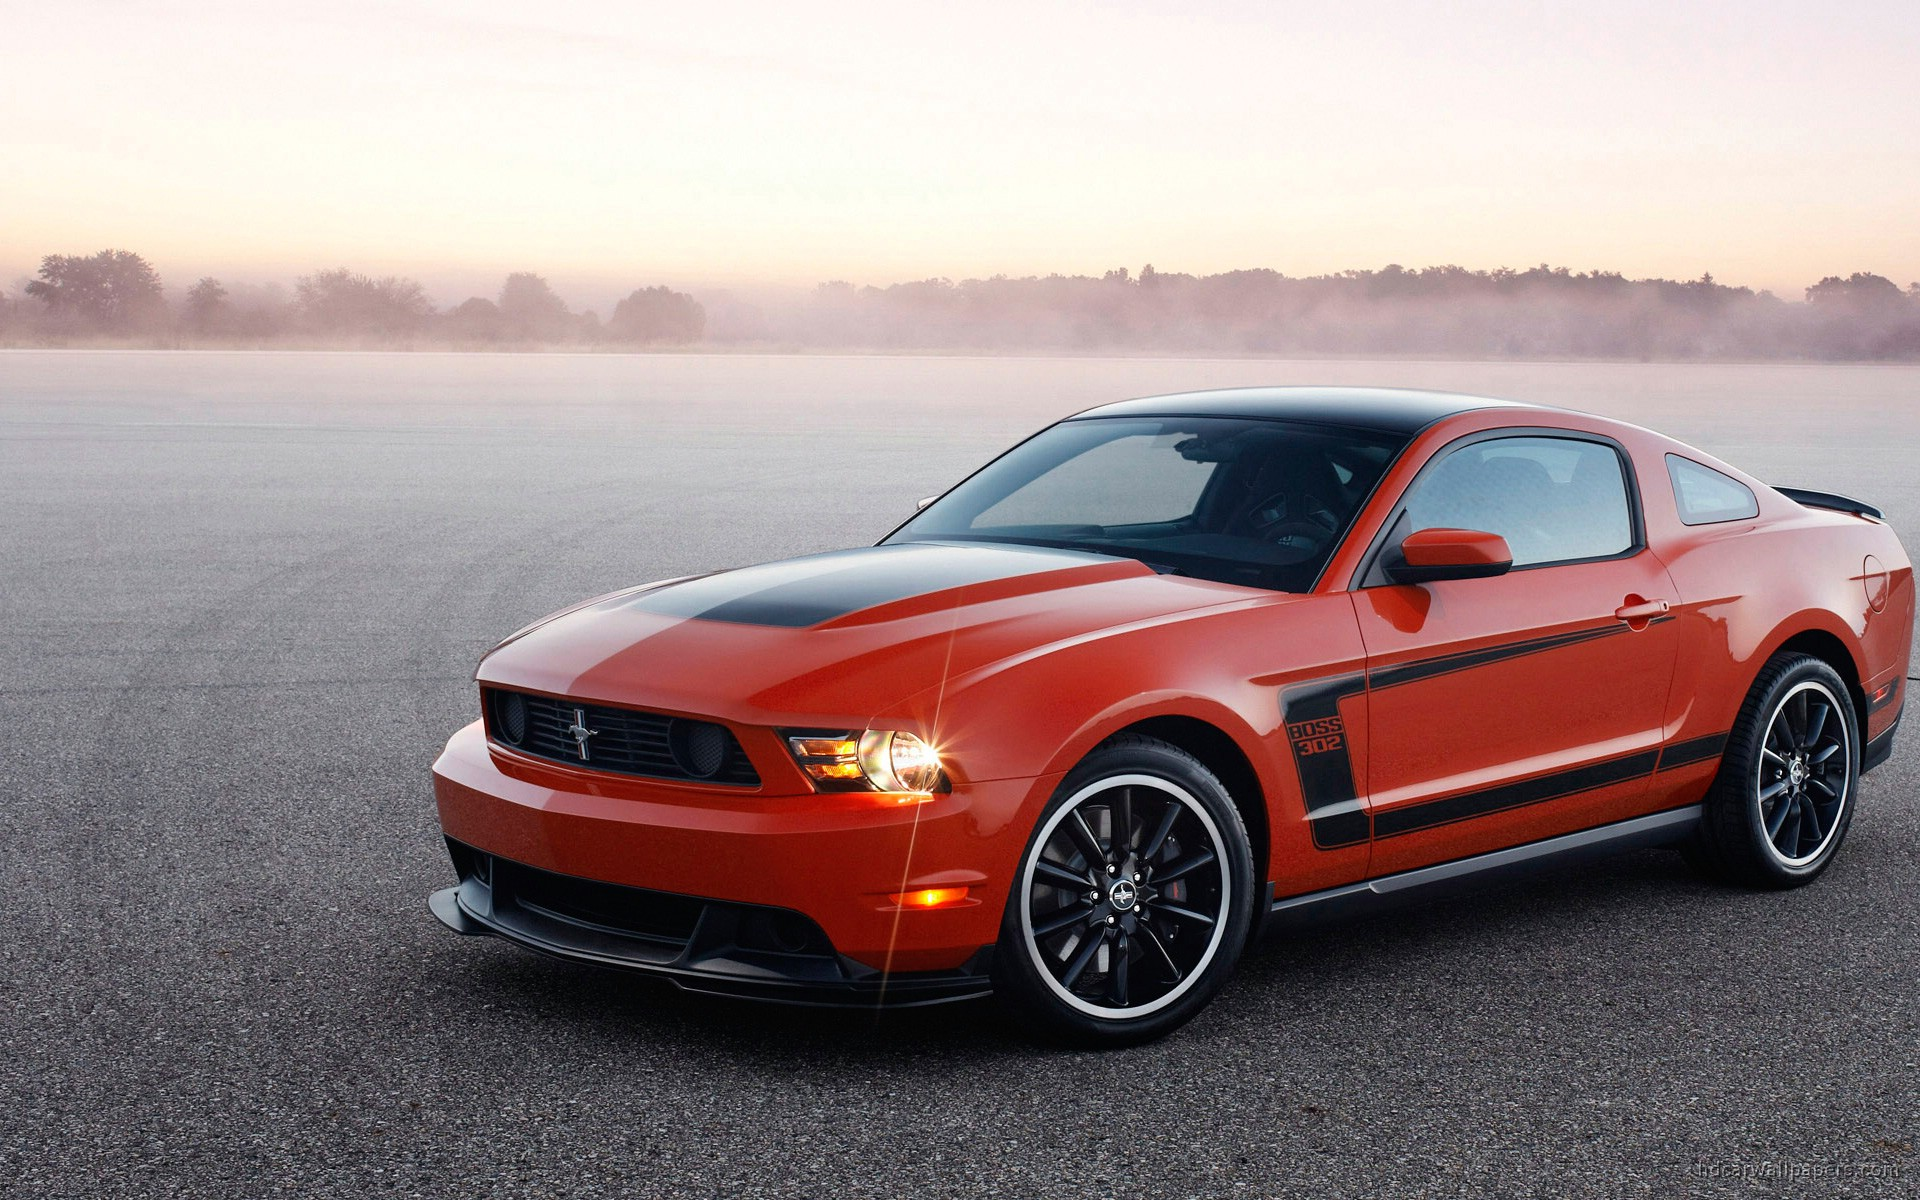 2012 Ford Mustang Boss 4 Wallpaper Hd Car Wallpapers